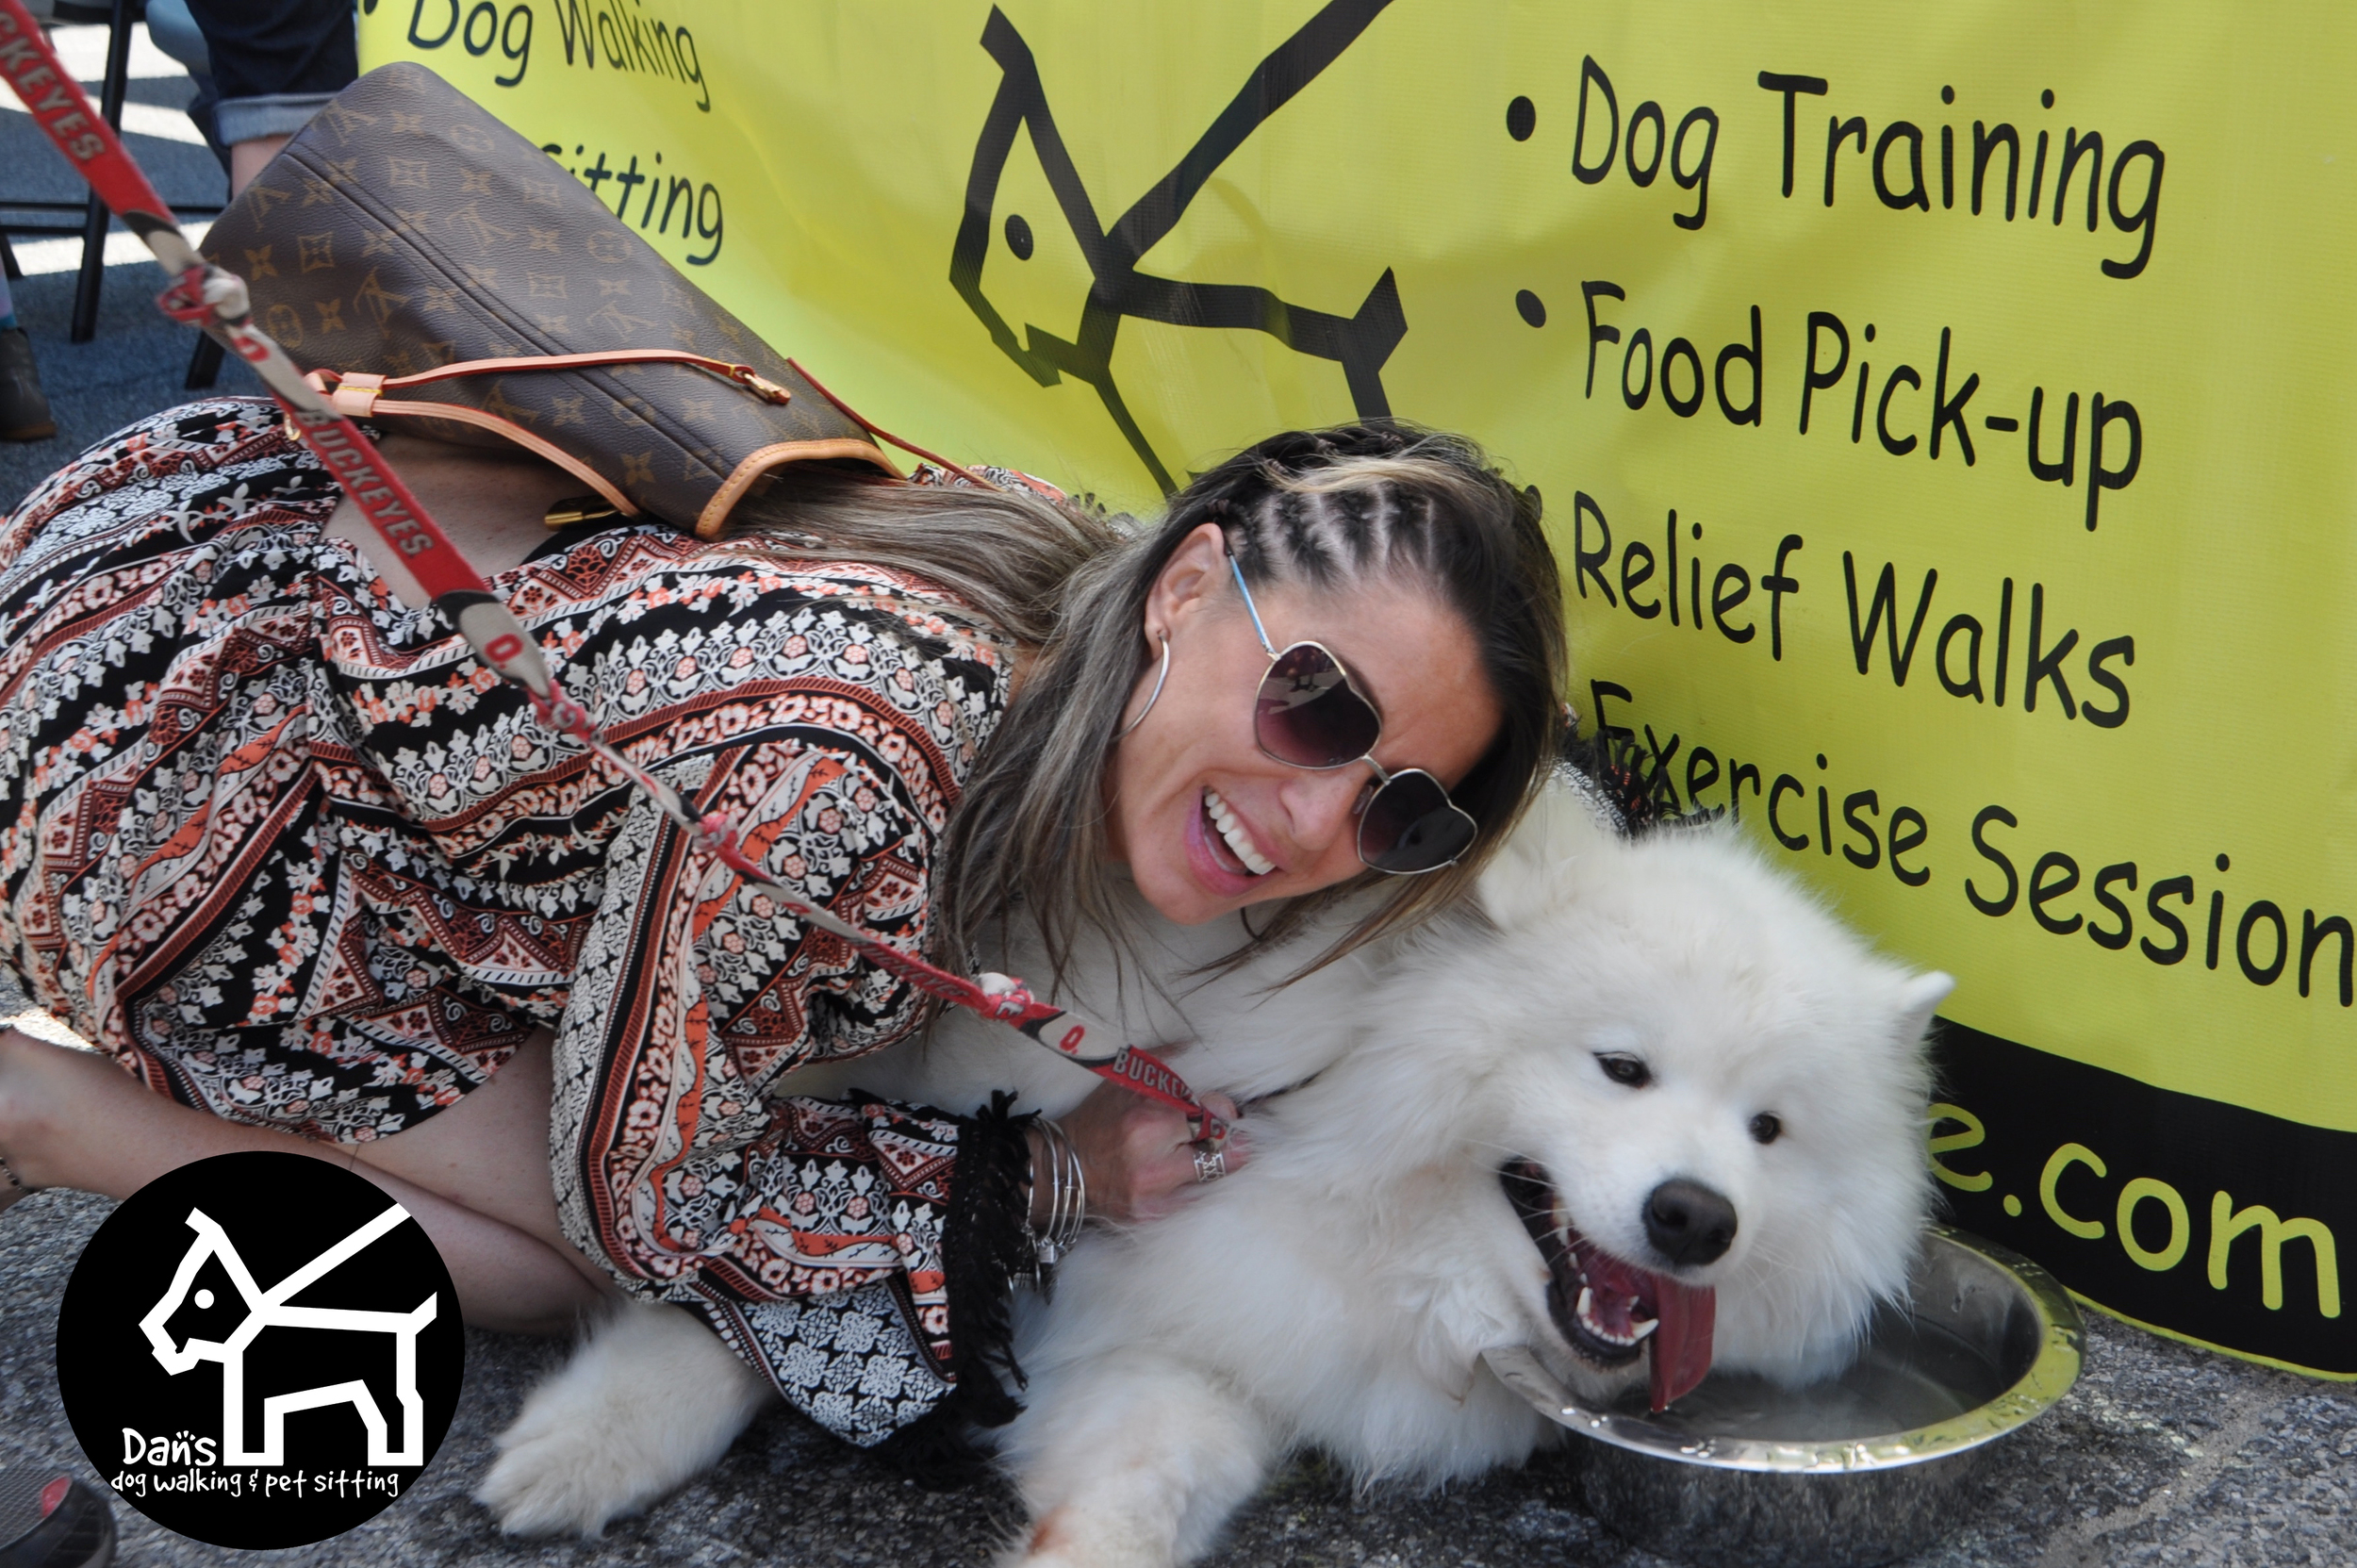 Jenny and Buckeye cooling off at Dan's Dog Walking and Pet Sitting Doggie Photo Booth at Harbor Fest 2015.jpg